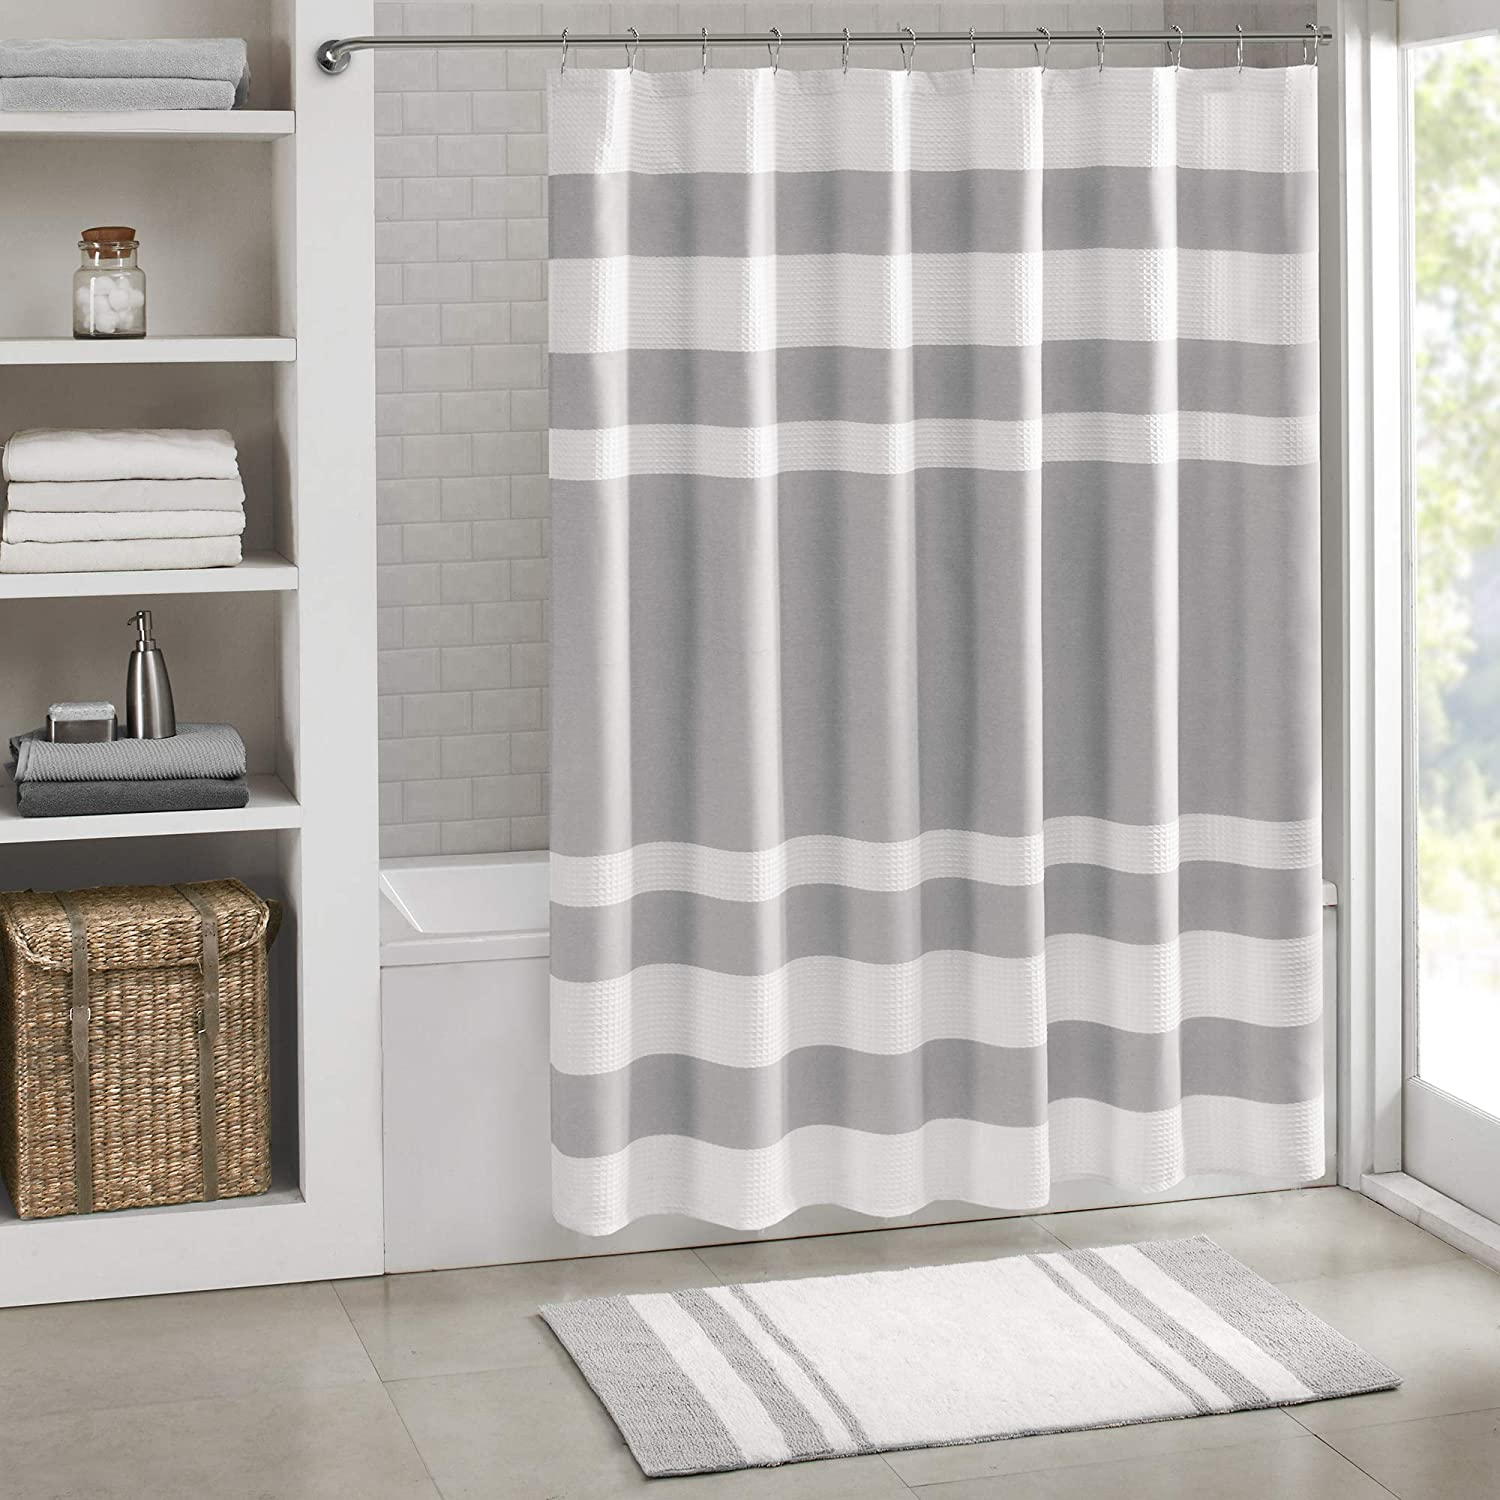 Madison Park Spa Waffle Shower Curtain Pieced Solid Microfiber Fabric with 3M Scotchgard Water Repellent Treatment Modern Home Bathroom Decorations, Standard 72X72, Grey: Home & Kitchen